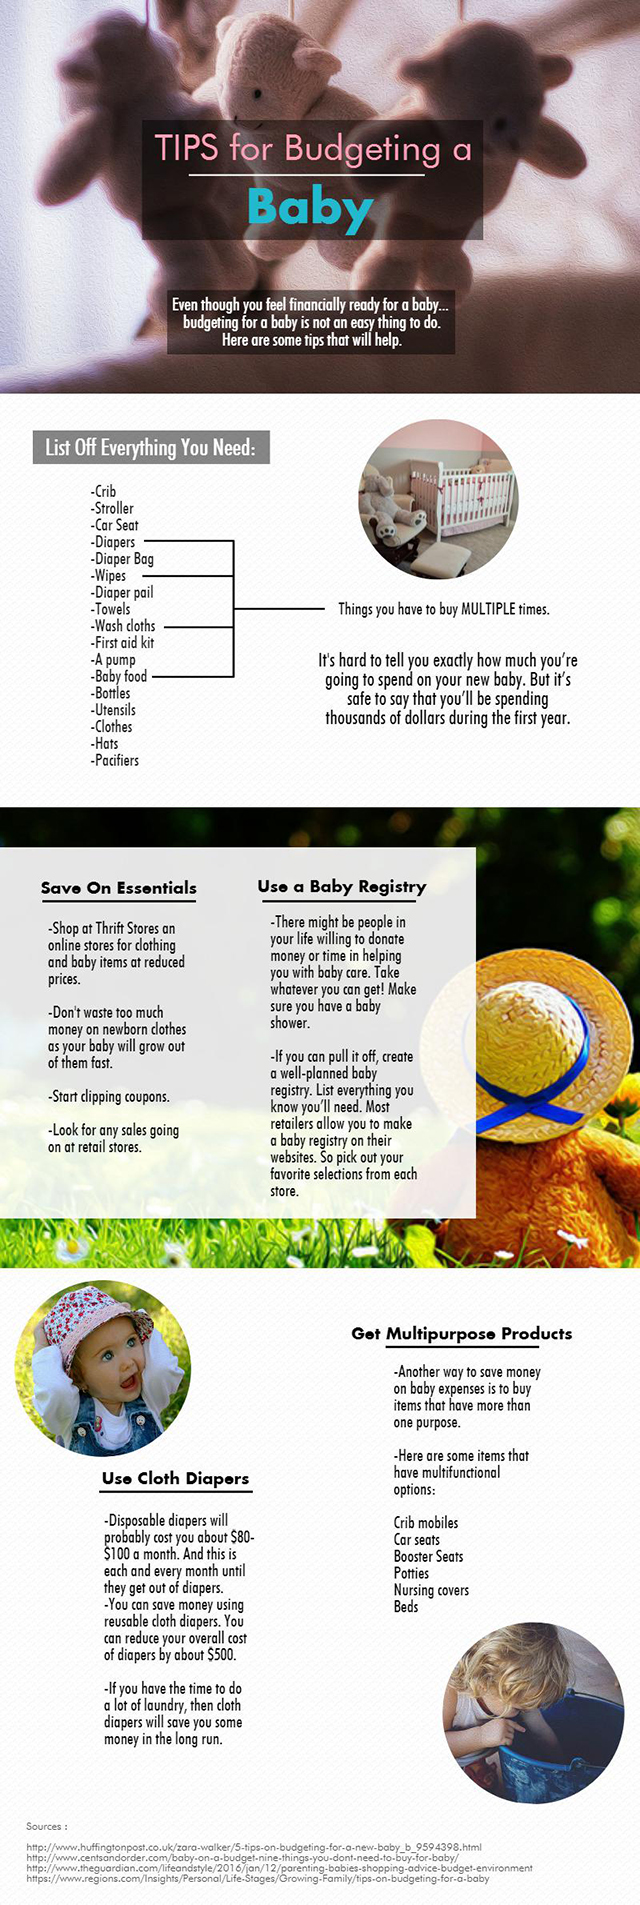 Budgeting A Baby - Infographic